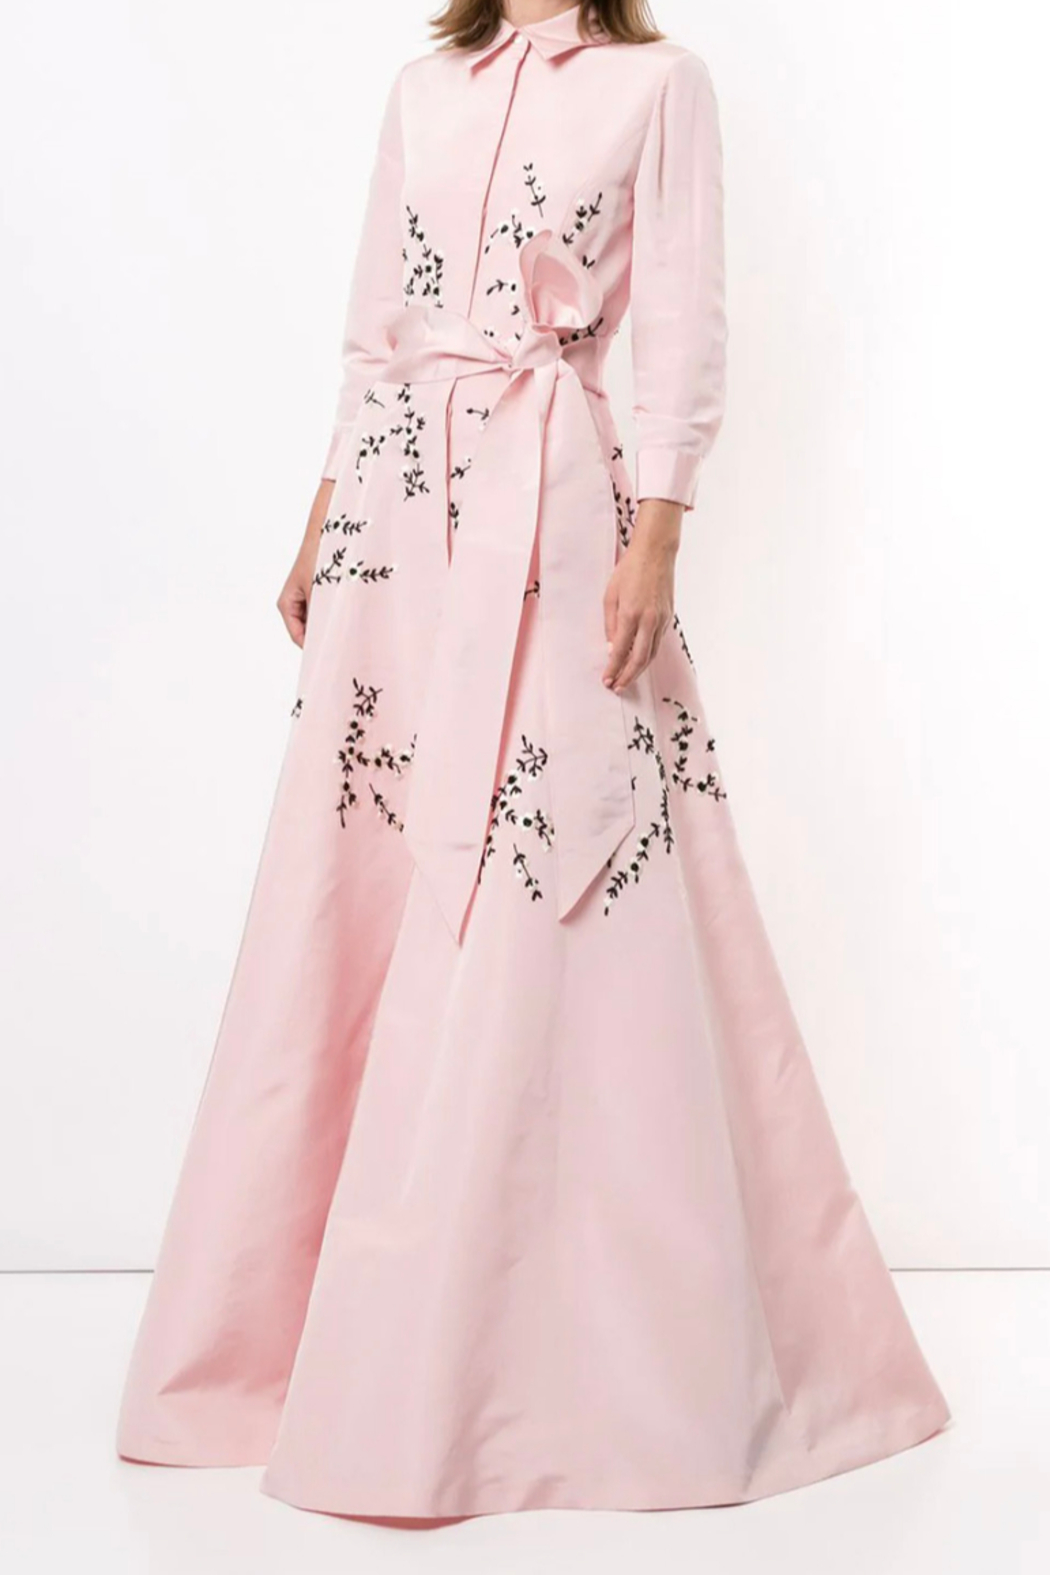 Carolina Herrera  LONG SLEEVE EMBROIDERED TRENCH GOWN - Main Image